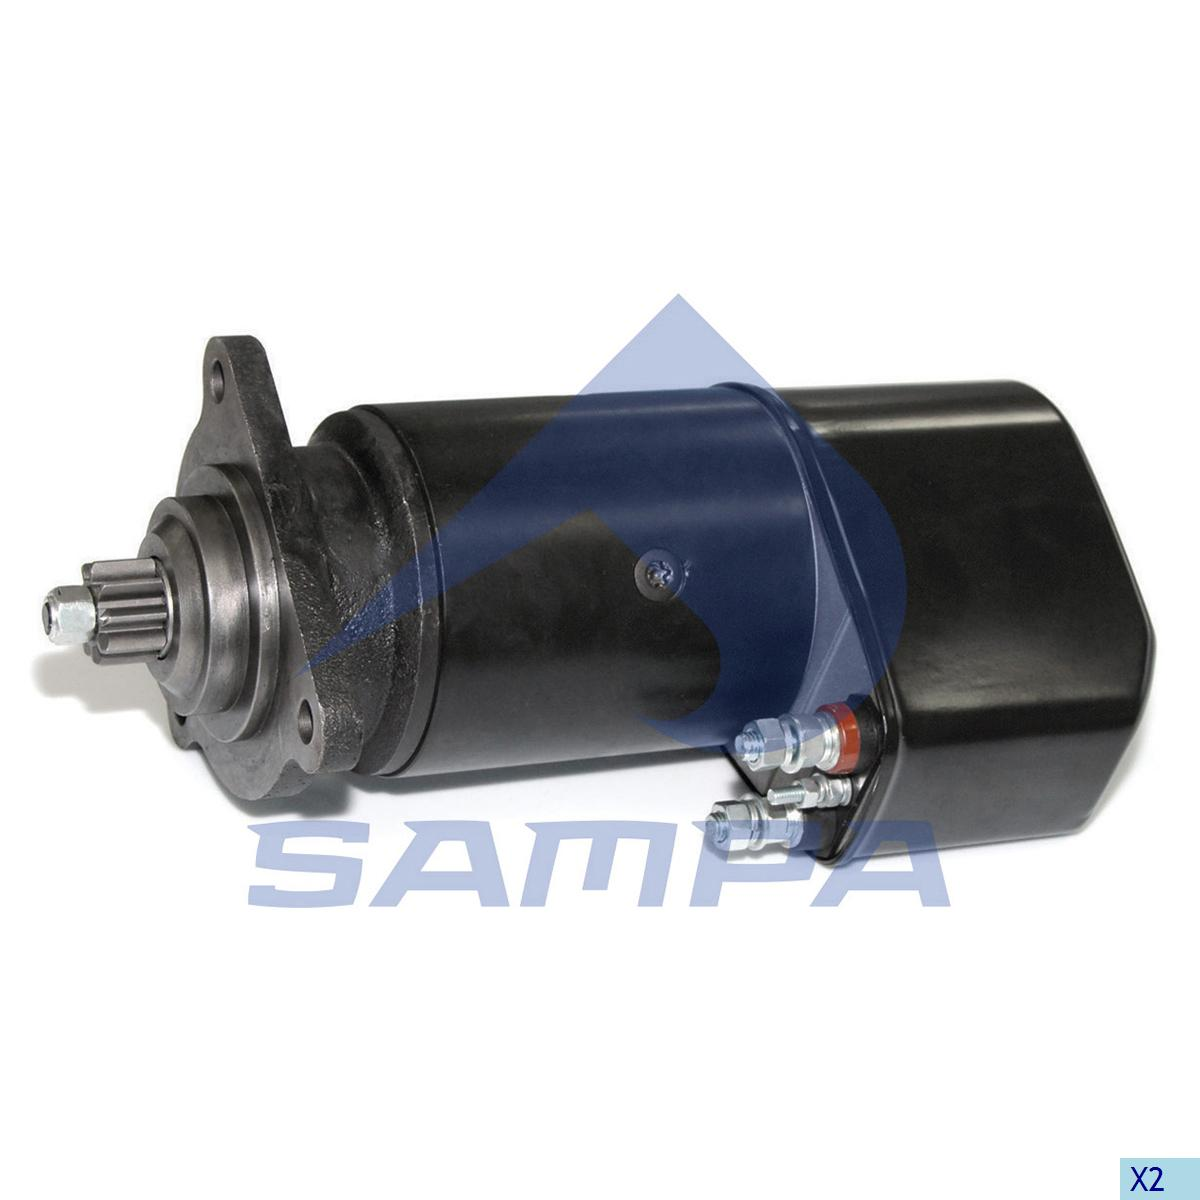 Starter Motor, Man, Electric System